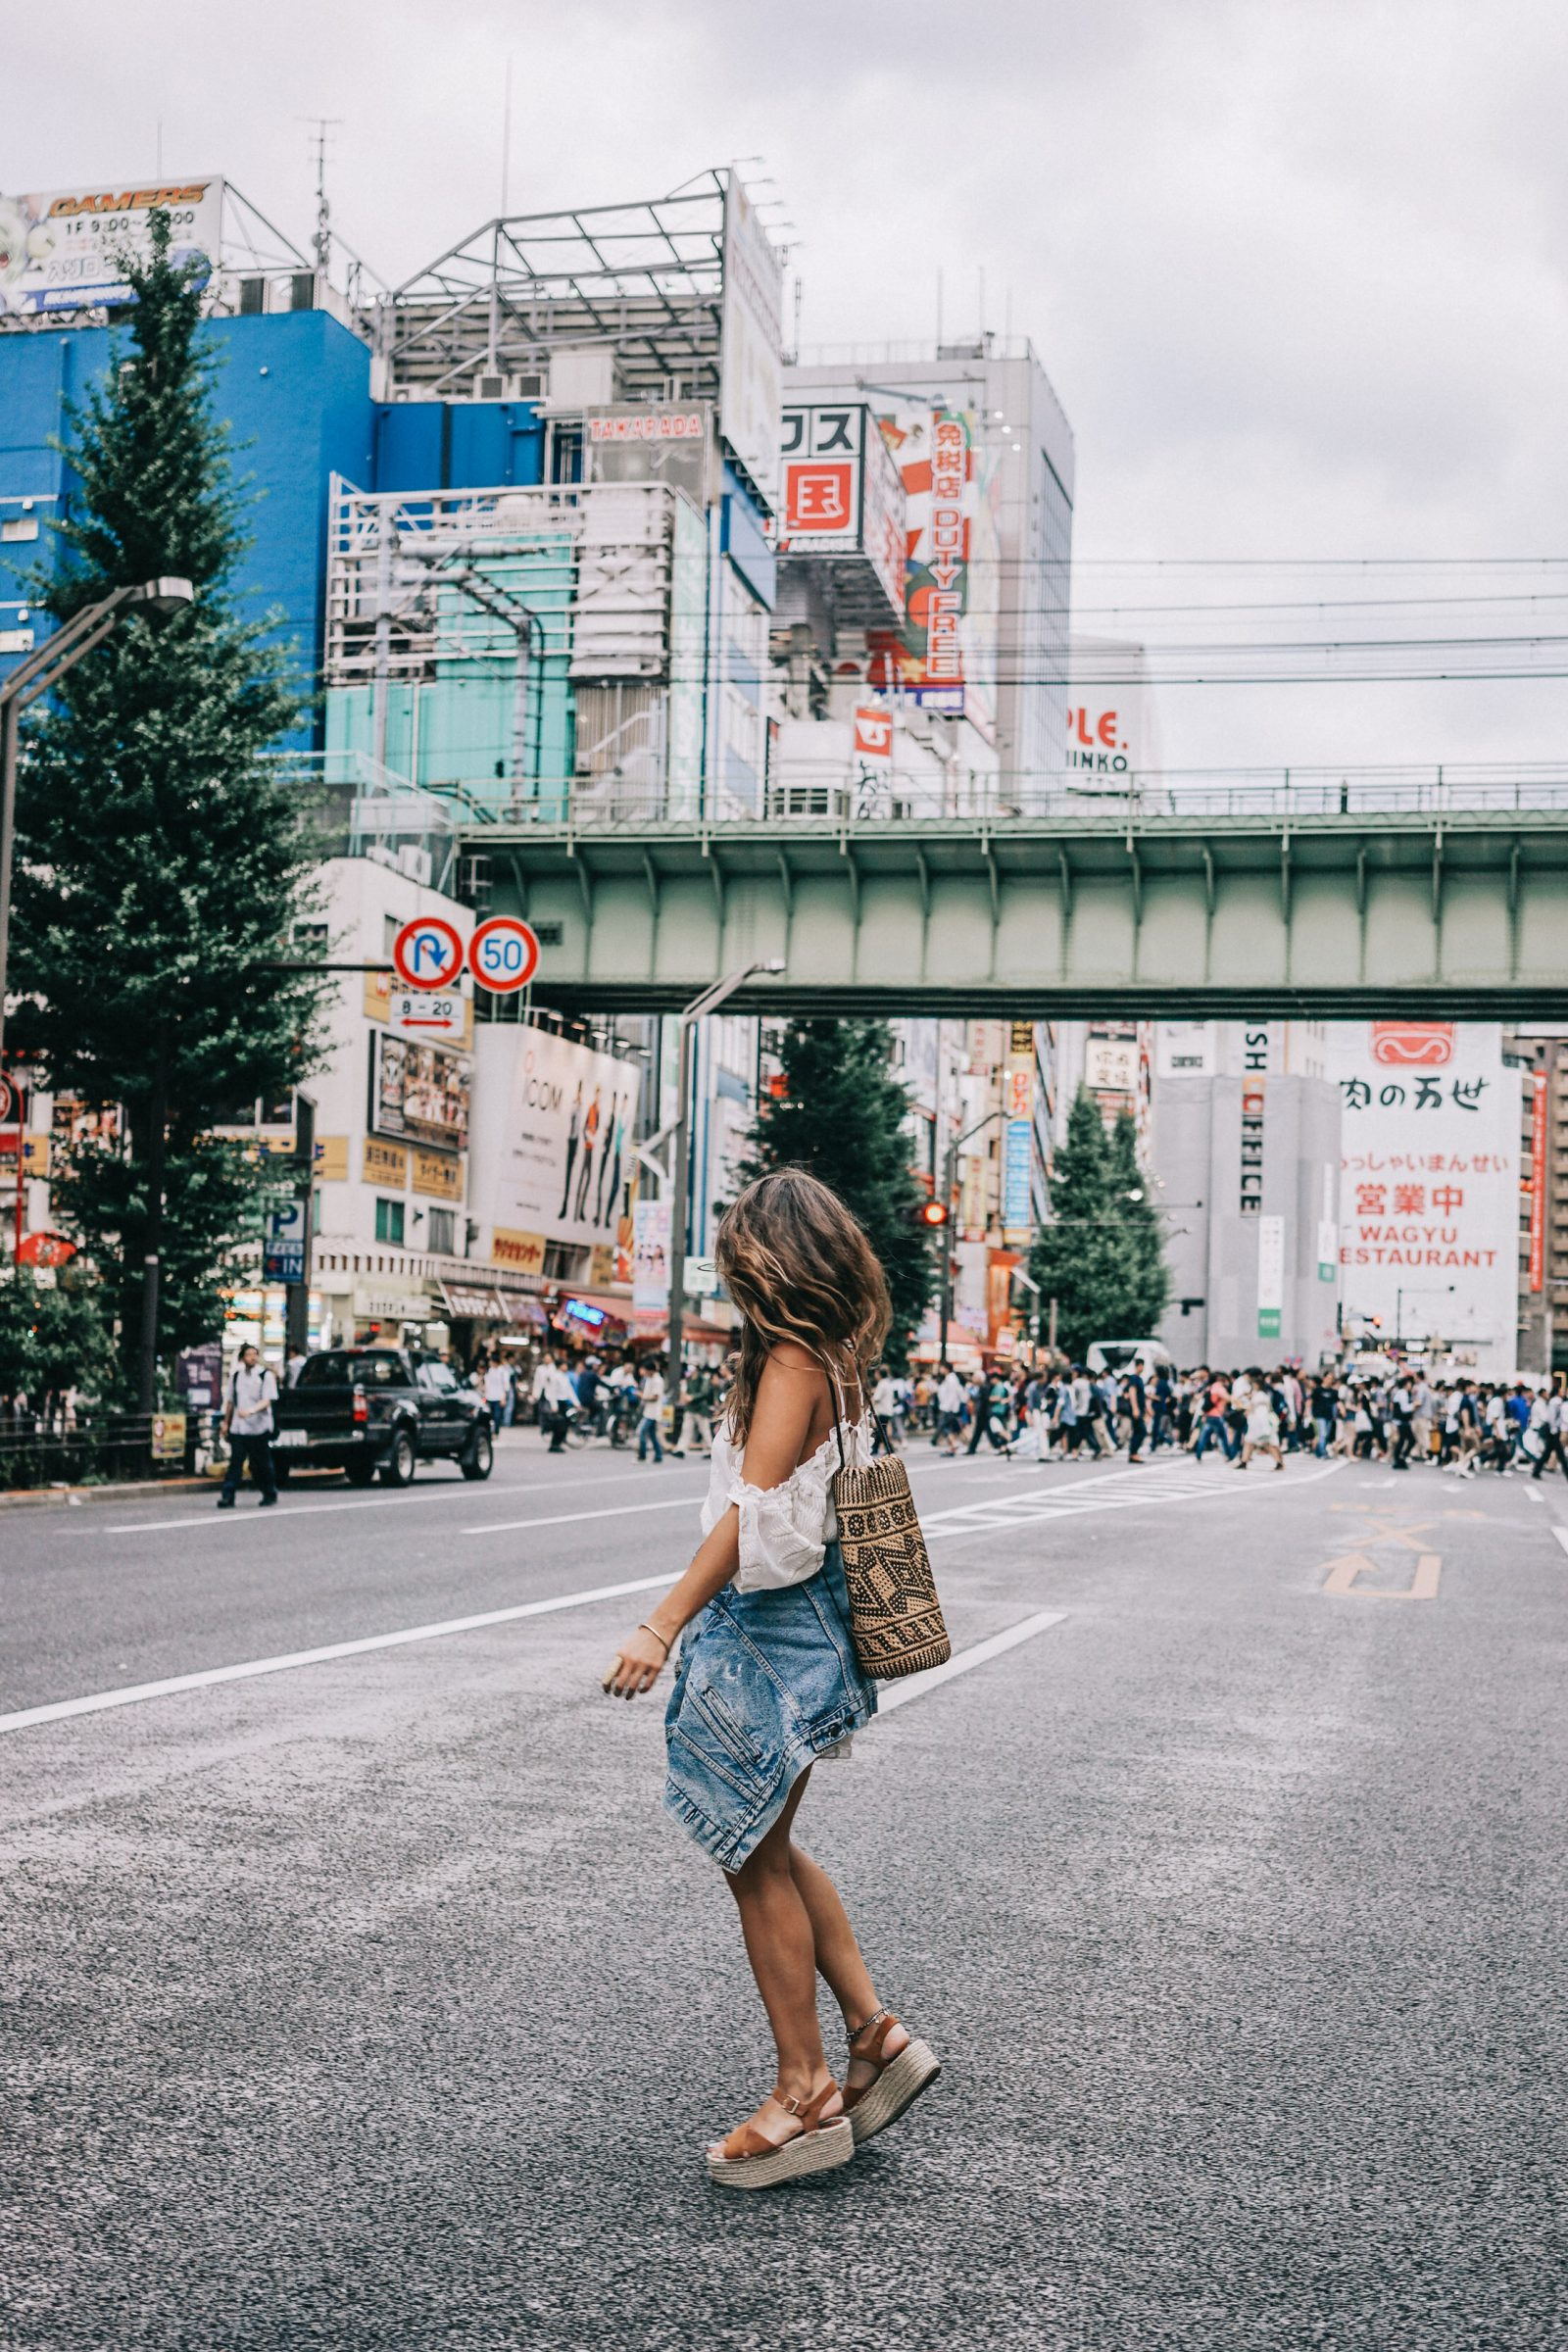 tokyo_travel_guide-outfit-collage_vintage-street_style-lovers_and_friends_jumpsuit-white_outfit-espadrilles-backpack-levis_denim_jacket-akihabara-123